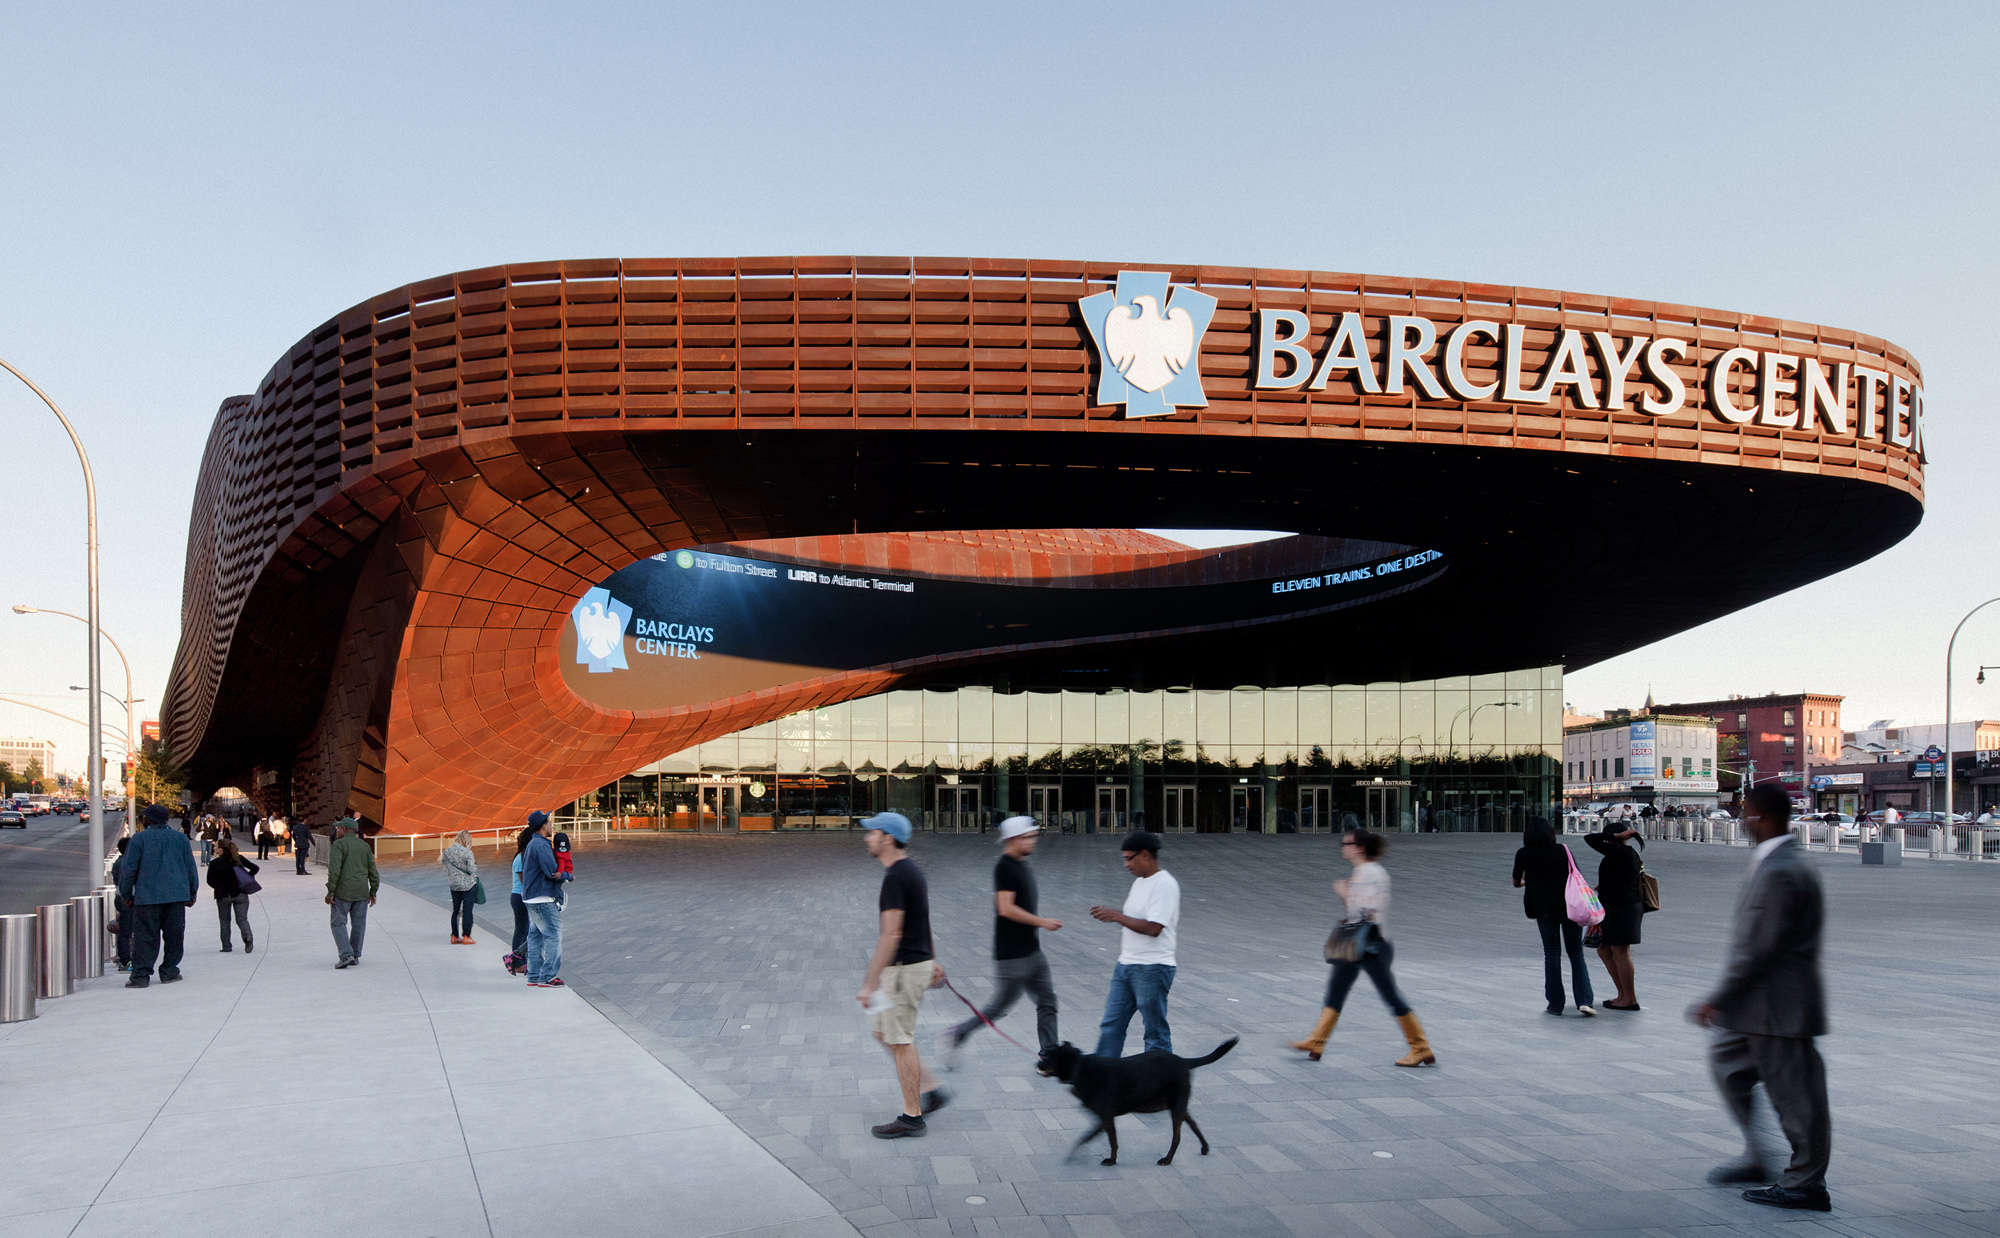 BarclaysCenter_001.jpg